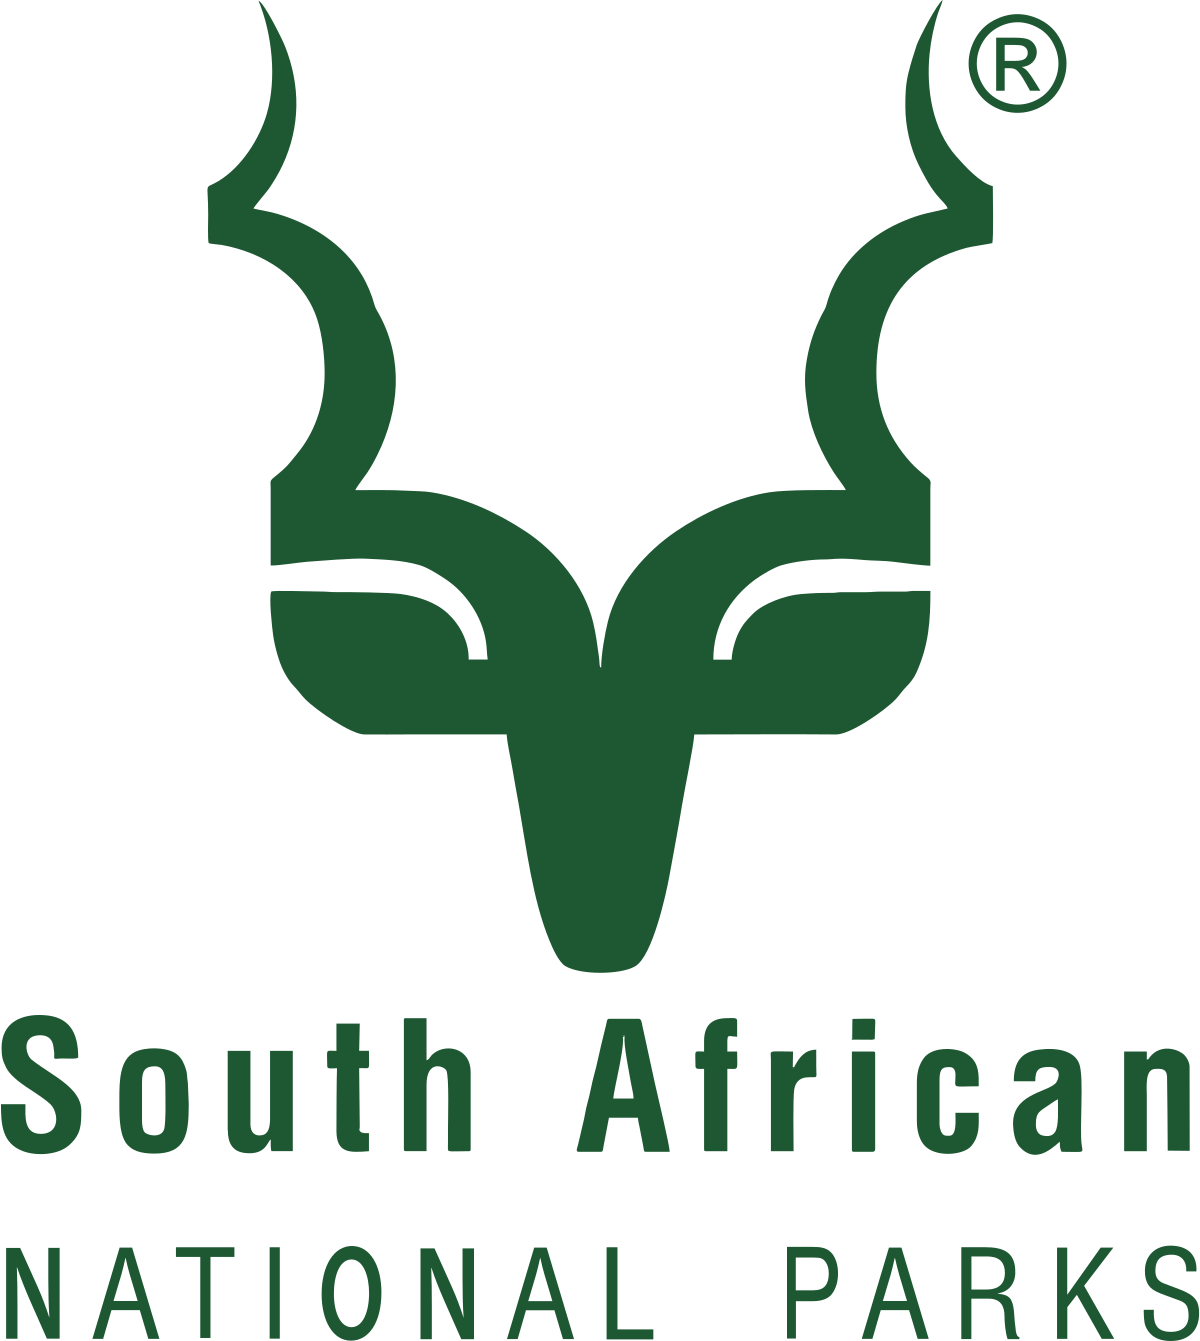 Vector nature national park. South african parks wikipedia